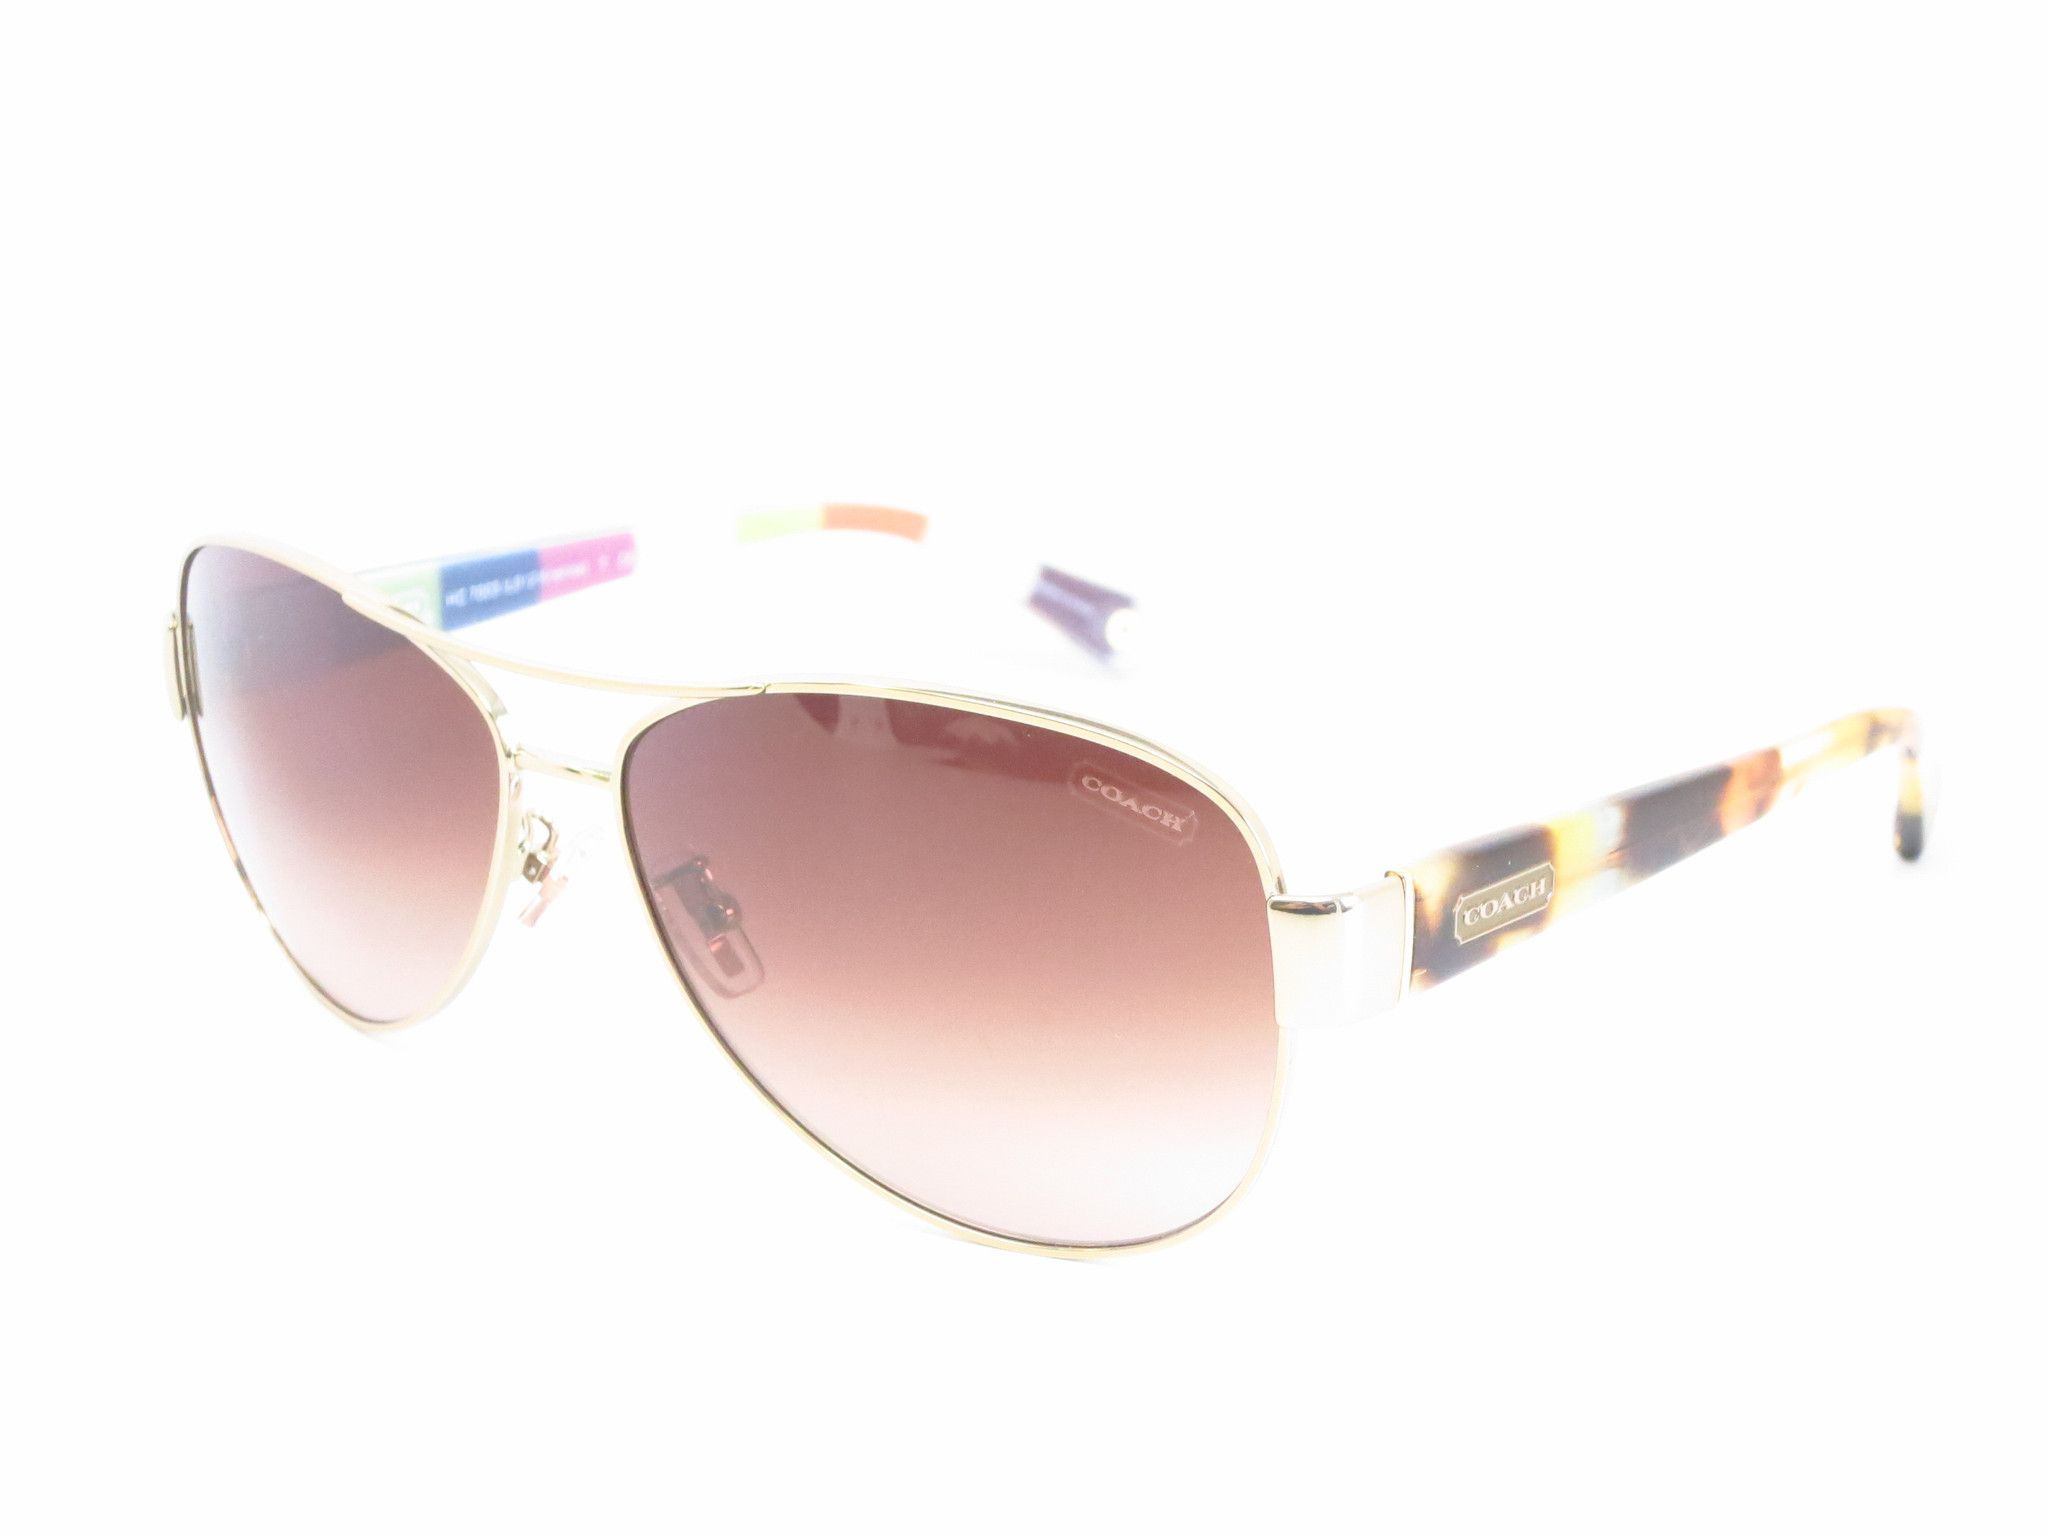 4573c8afe0351 ... promo code for coach hc 7003 kristina 9014 13 gold olive sunglasses  dca9b 02303